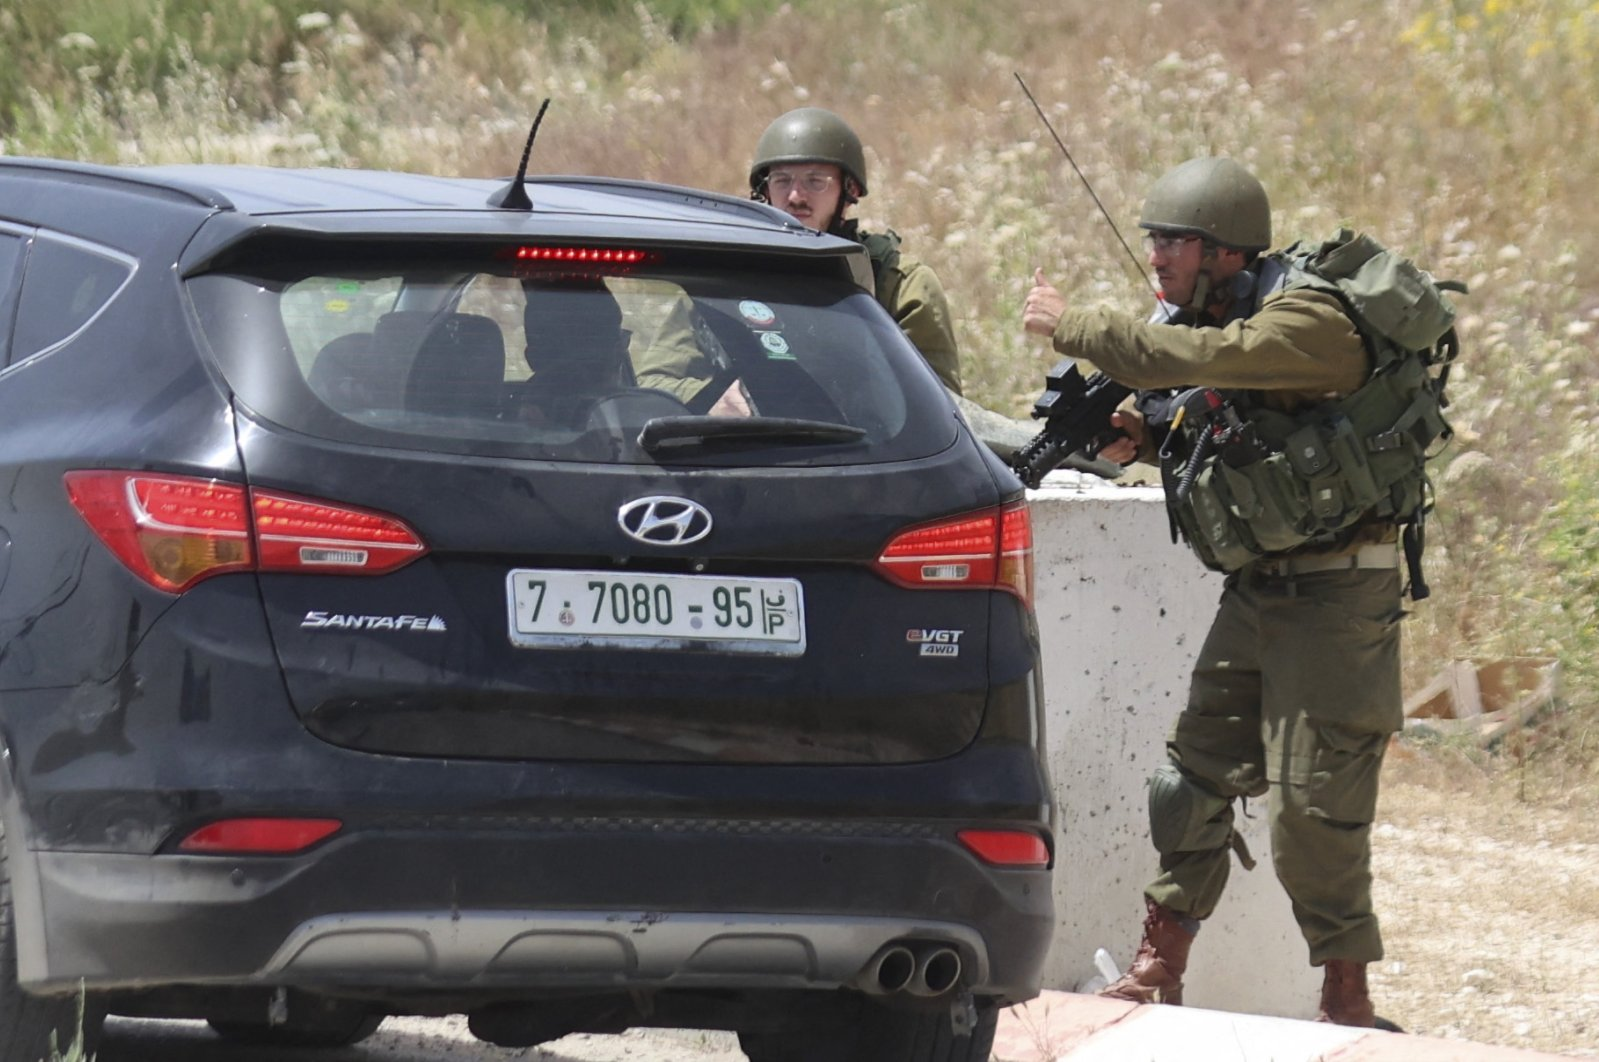 Israeli soldiers search cars at the Hawara checkpoint, the southern entrance to Nablus city in the illegally occupied West Bank, on May 3, 2021 (AFP Photo)